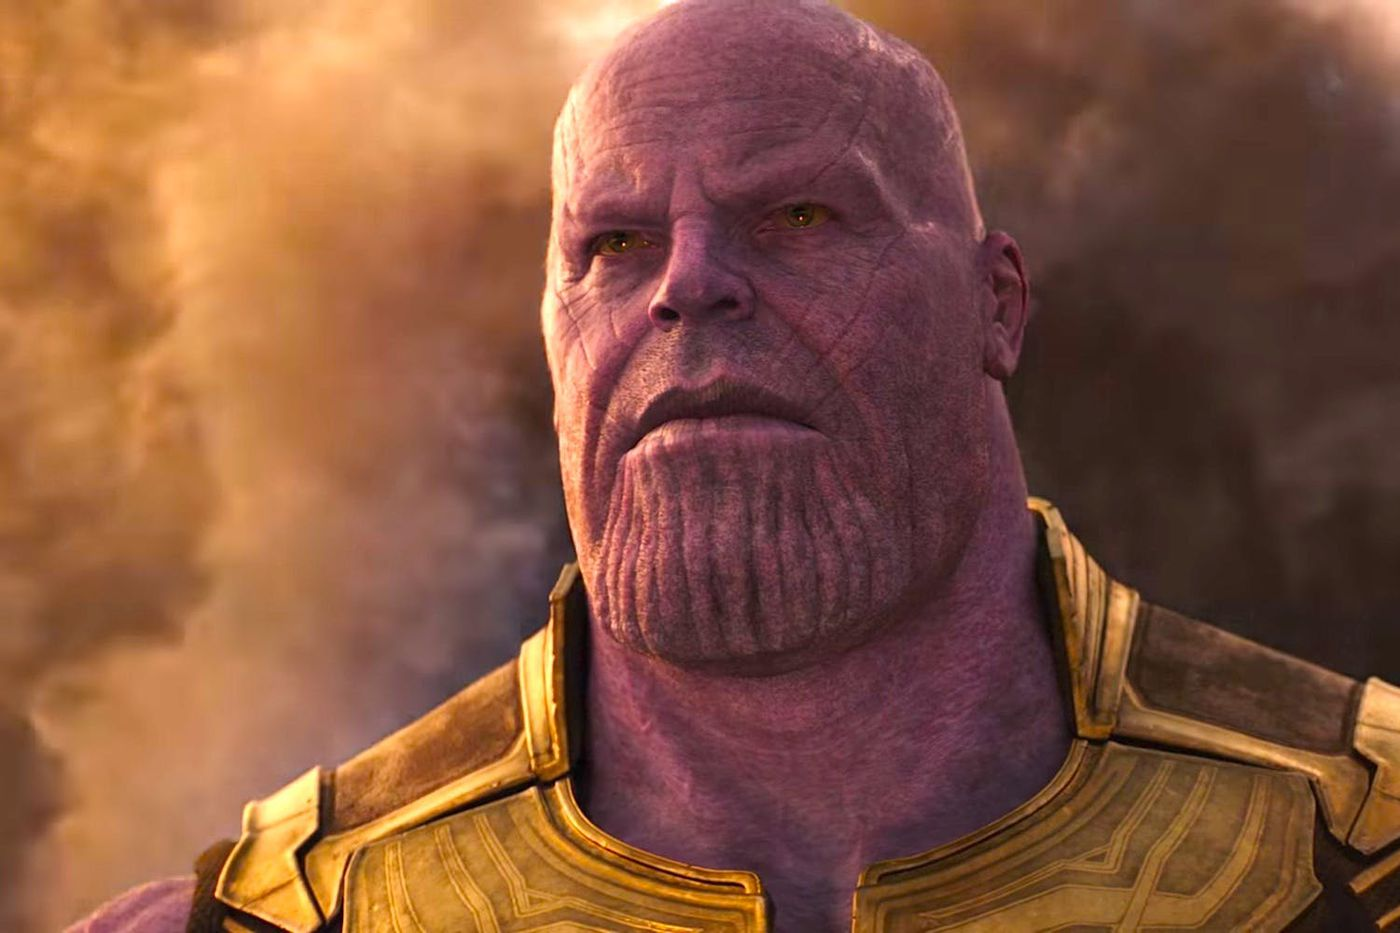 The Thanos subreddit is gleefully heading for mass slaughter